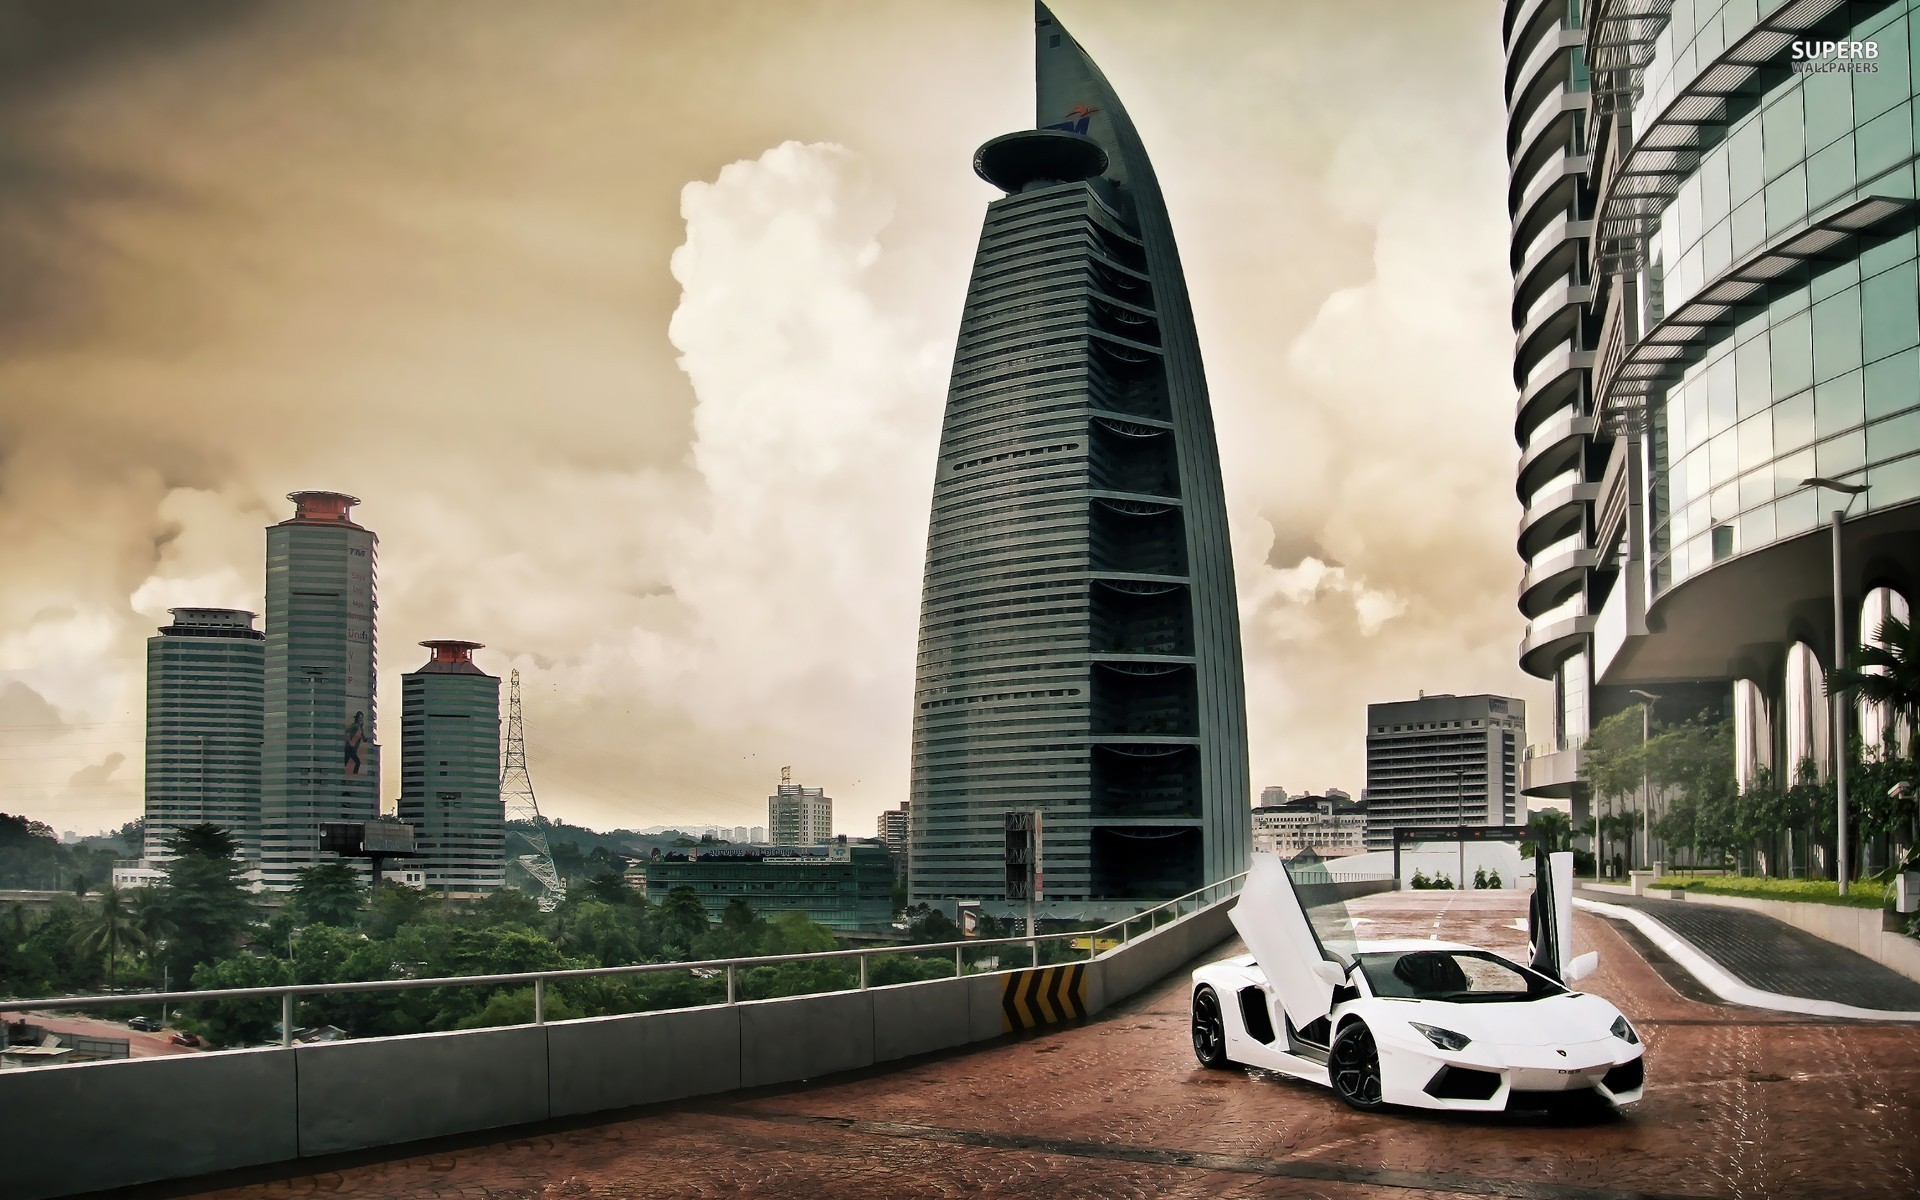 Lamborghini Aventador Wallpapers HD A35 White - lamborghini aventador desktop sports cars, race cars, luxury cars, expensive cars, wallpapers pictures images free download